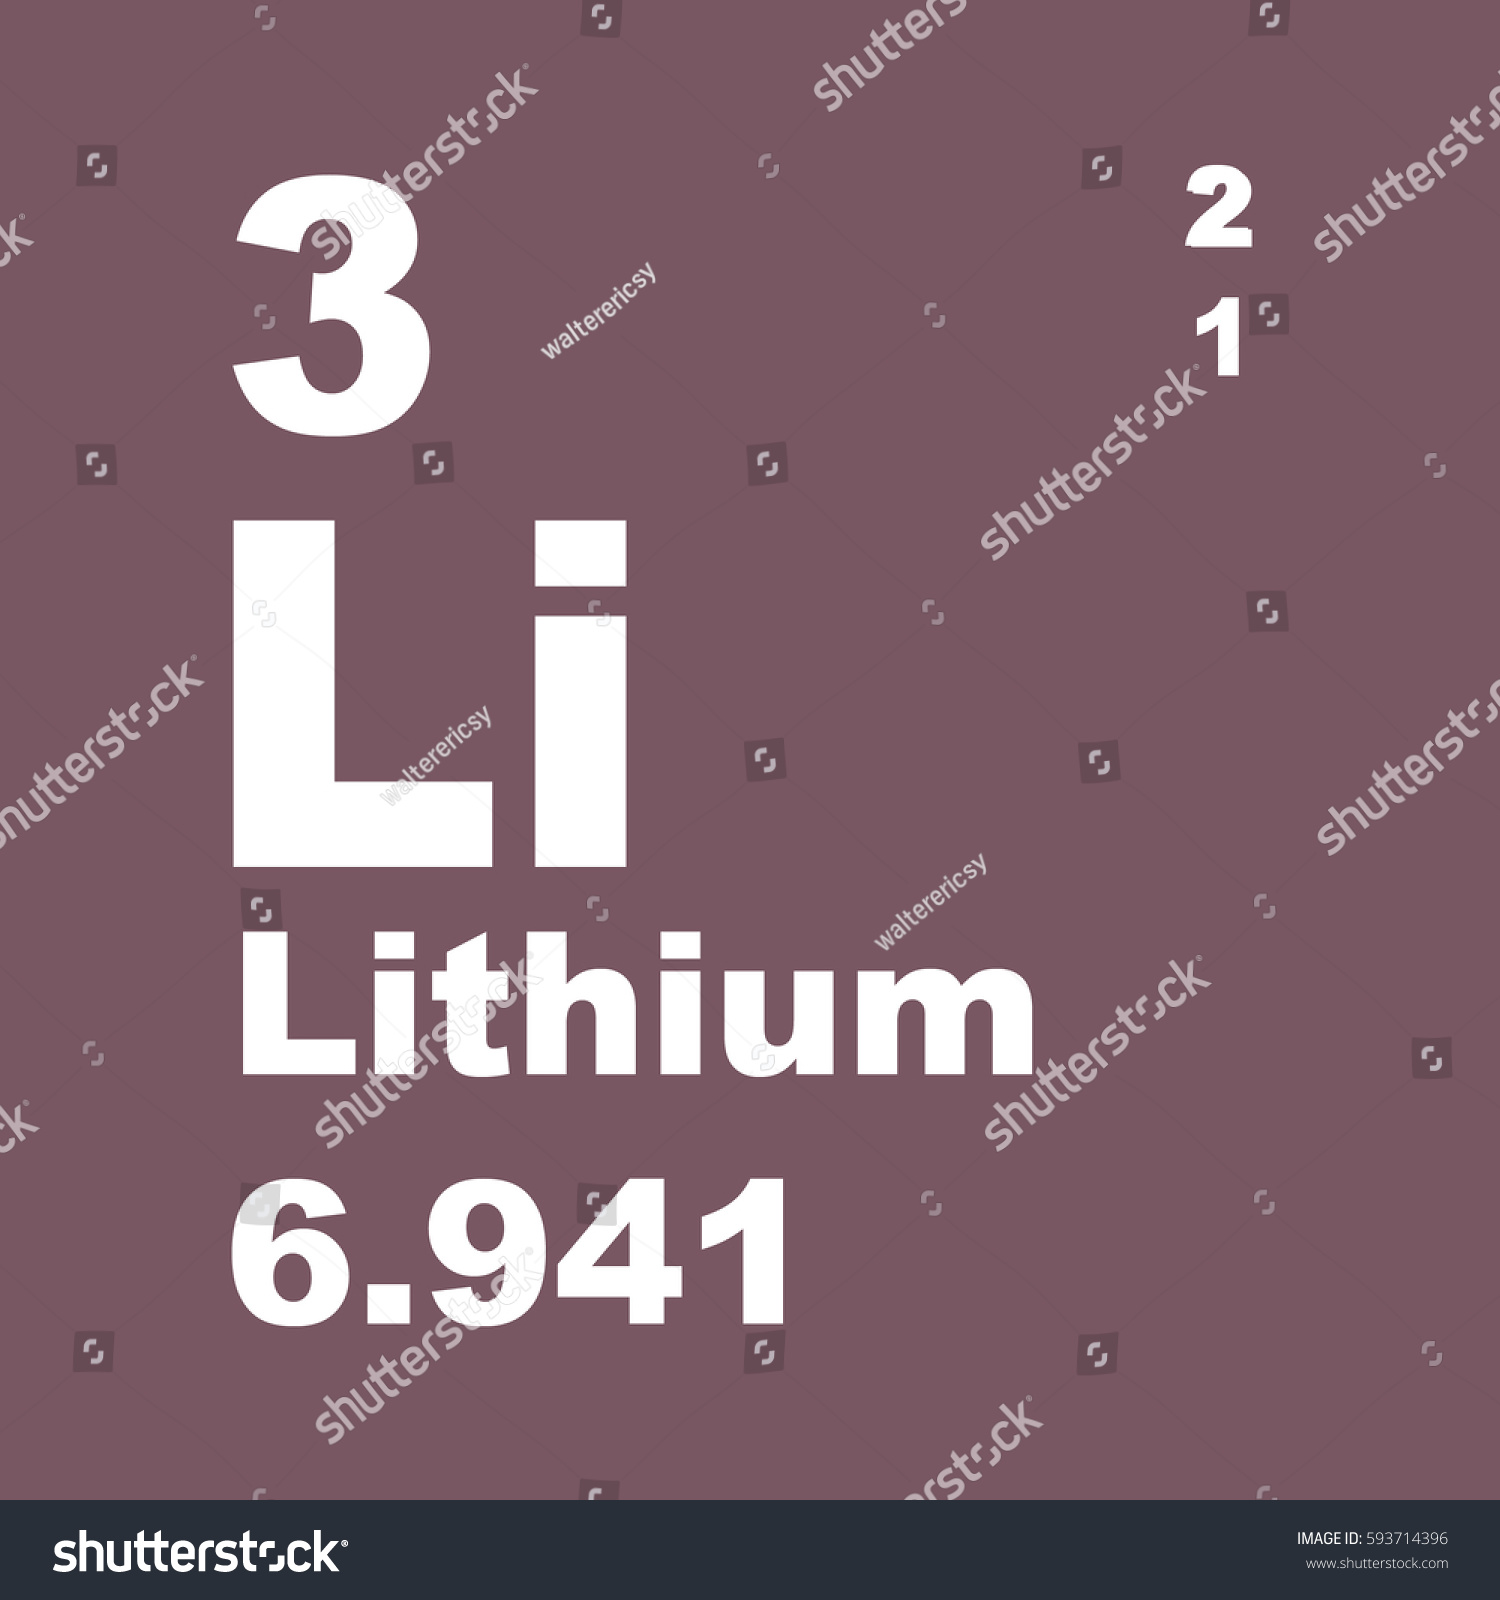 Periodic table of elements lithium image collections periodic lithium on periodic table images periodic table images lithium periodic table elements stock illustration 593714396 lithium gamestrikefo Image collections